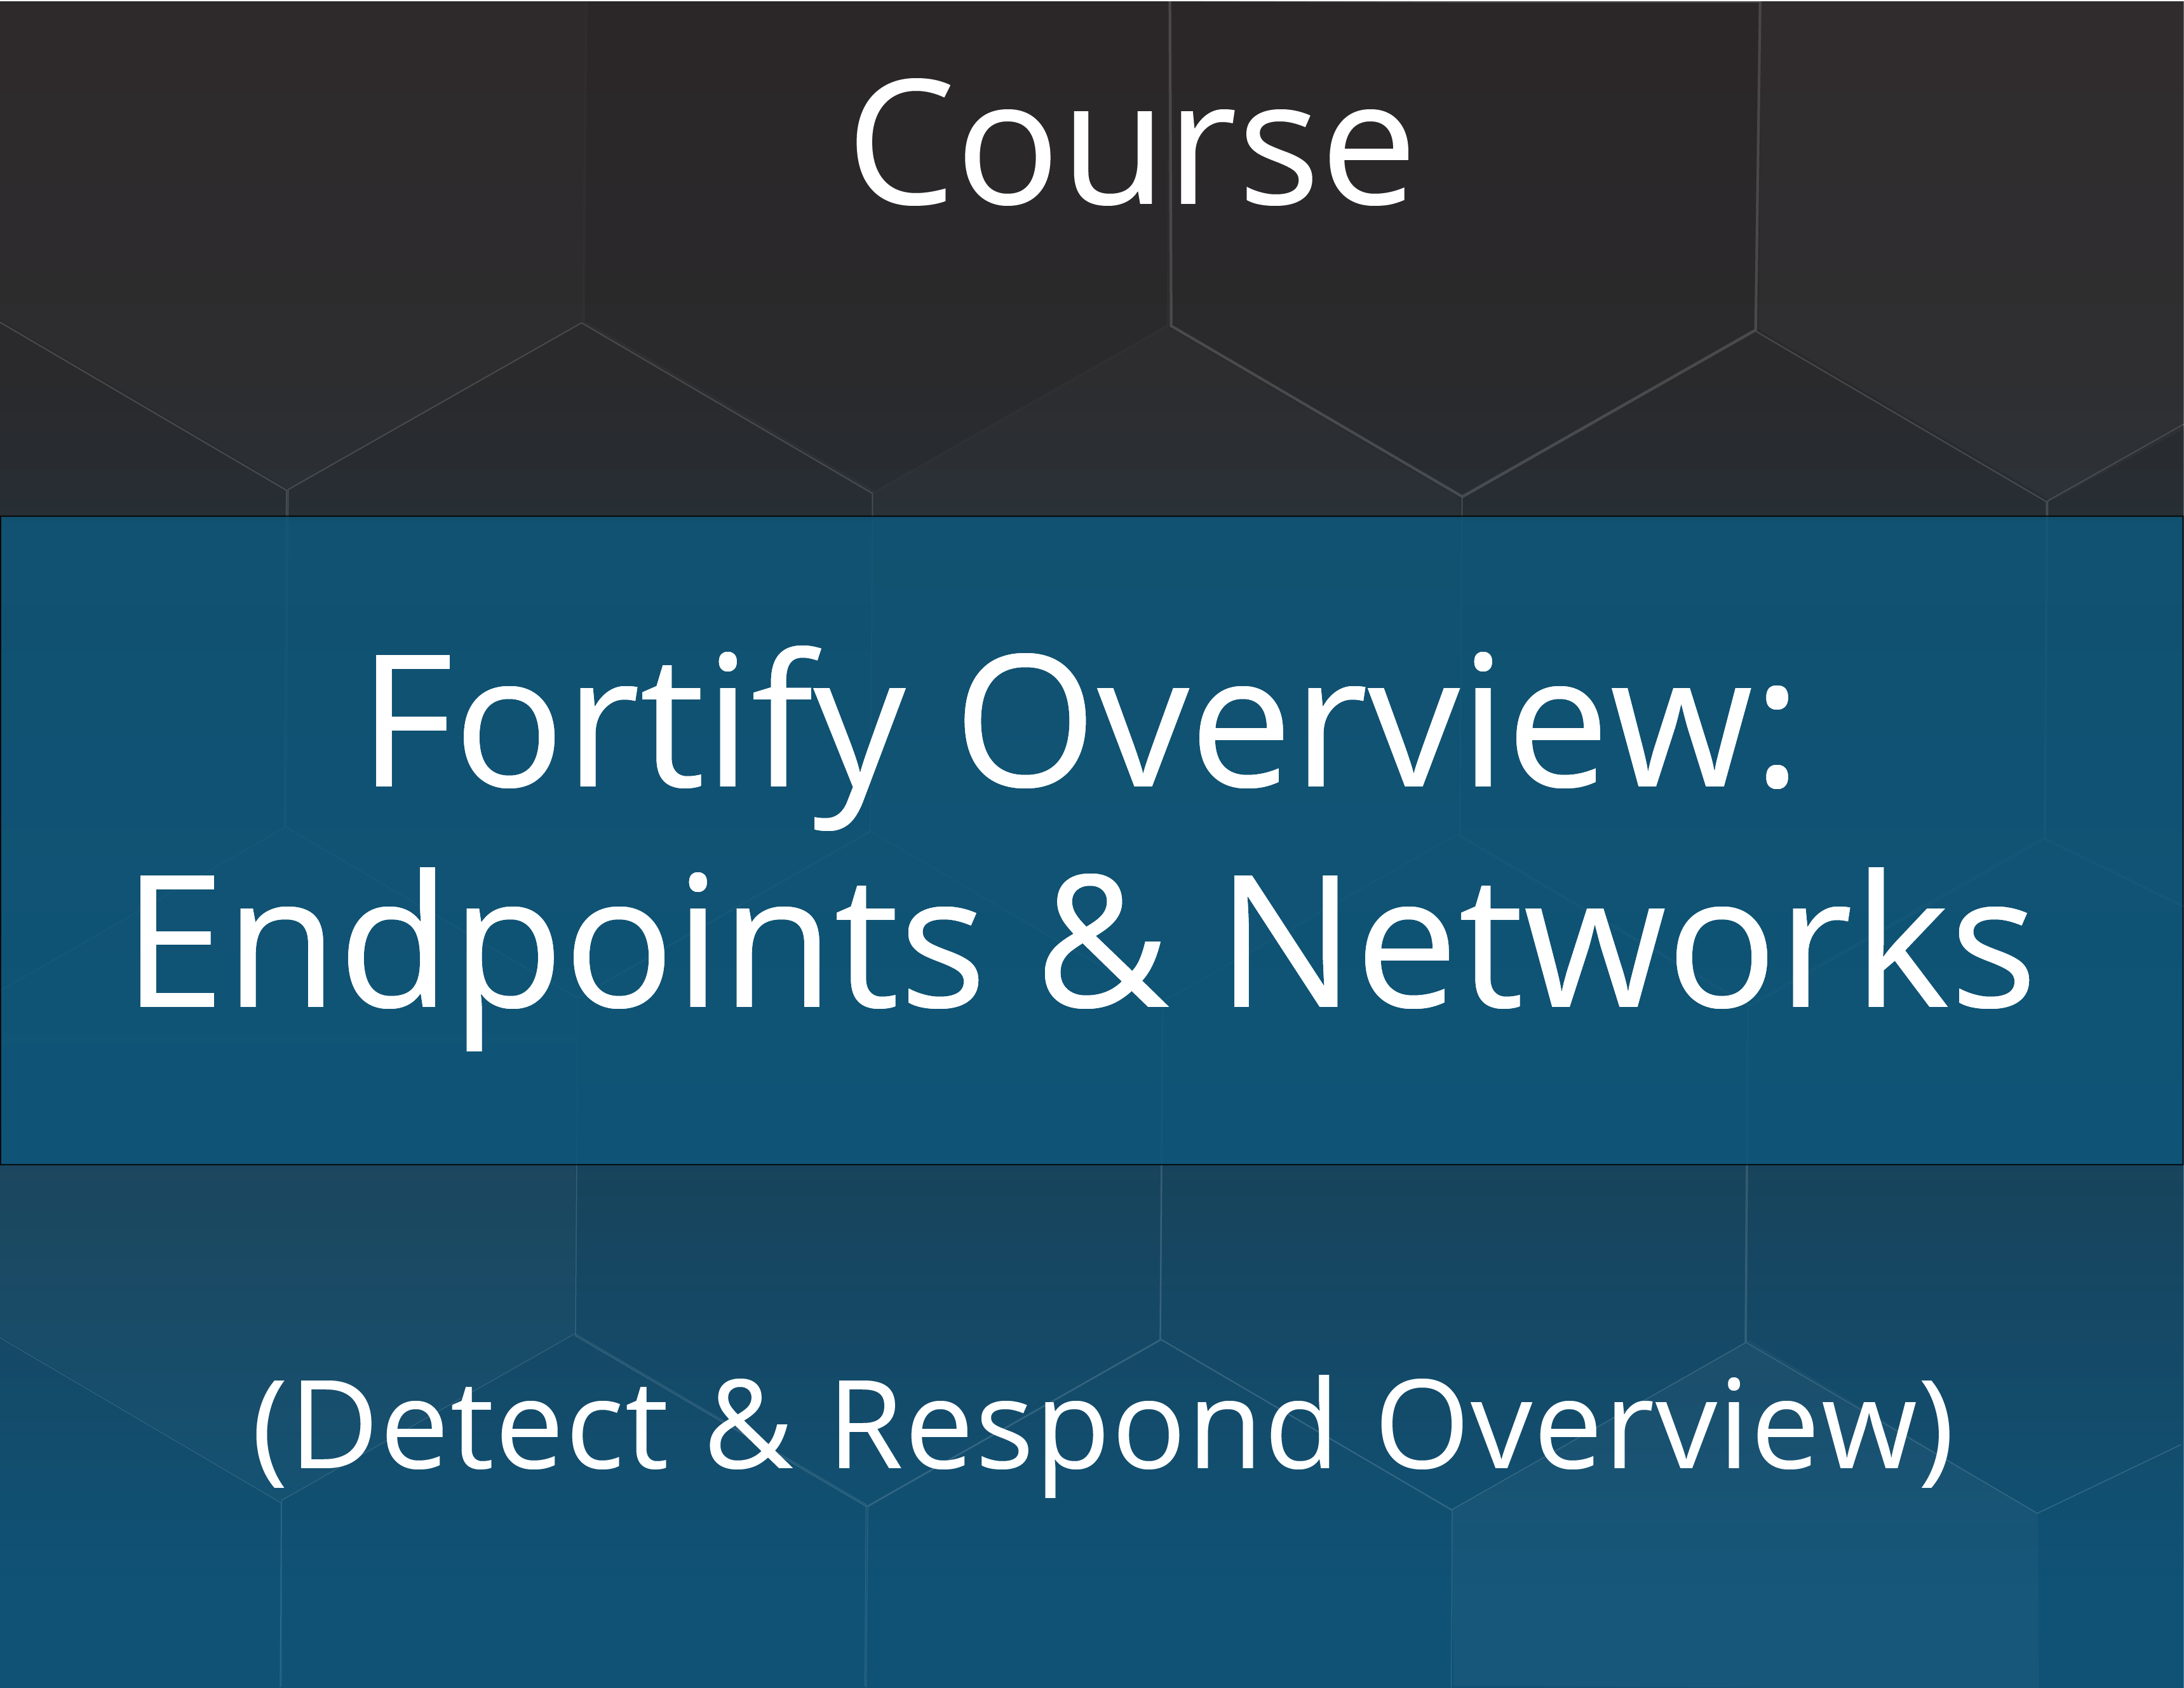 Fortify Overview: Endpoints & Networks